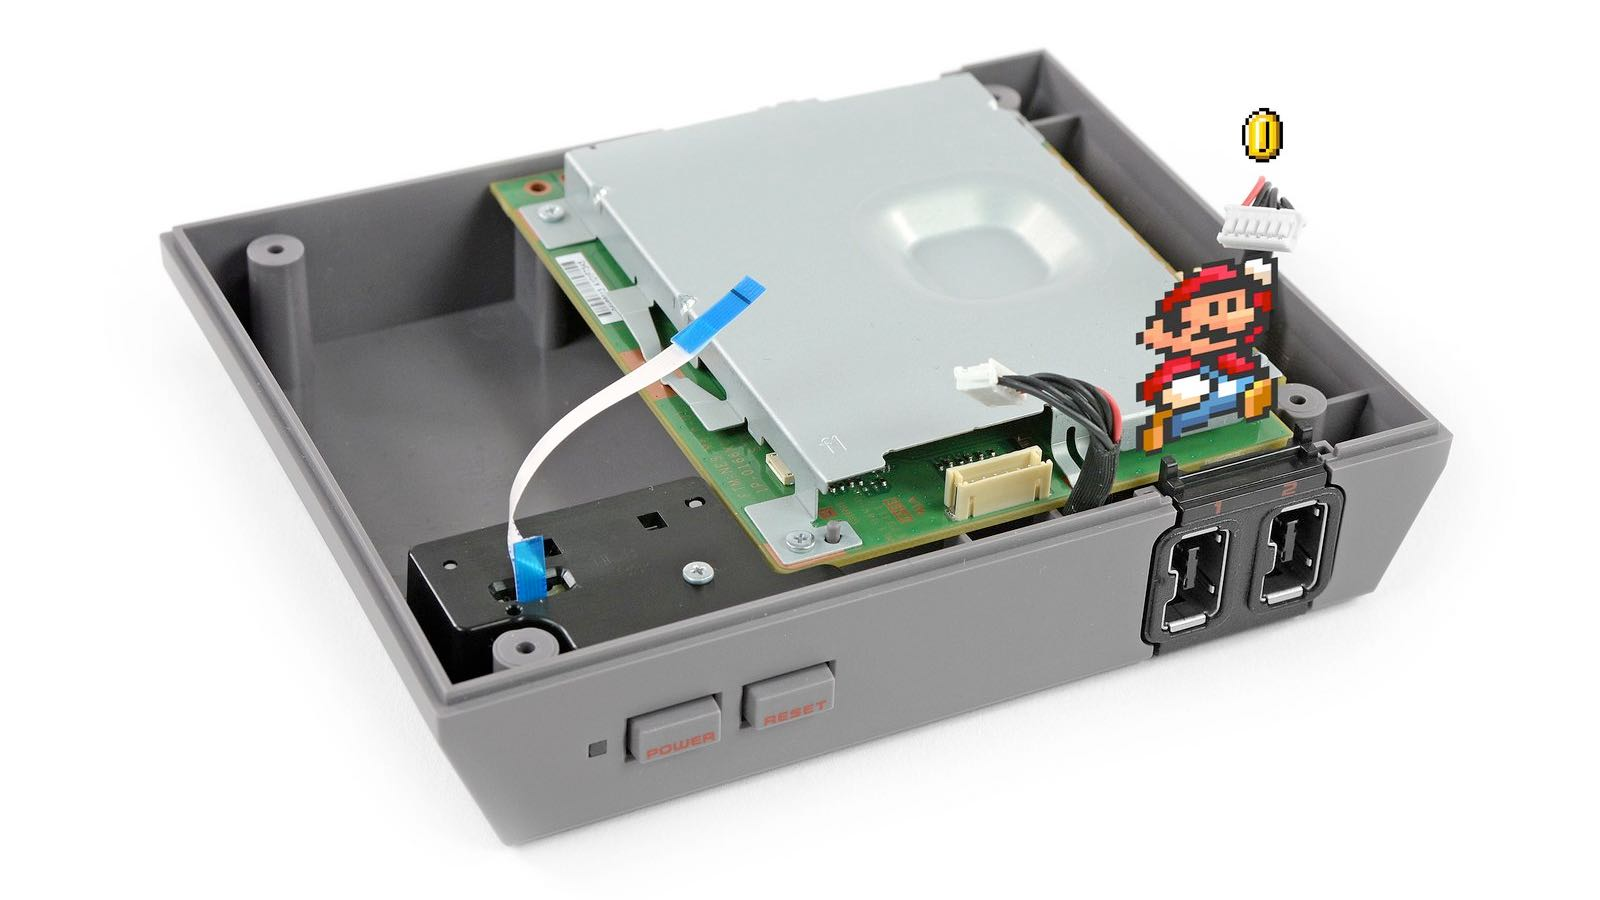 Paper mario affixed to partly torn down NES